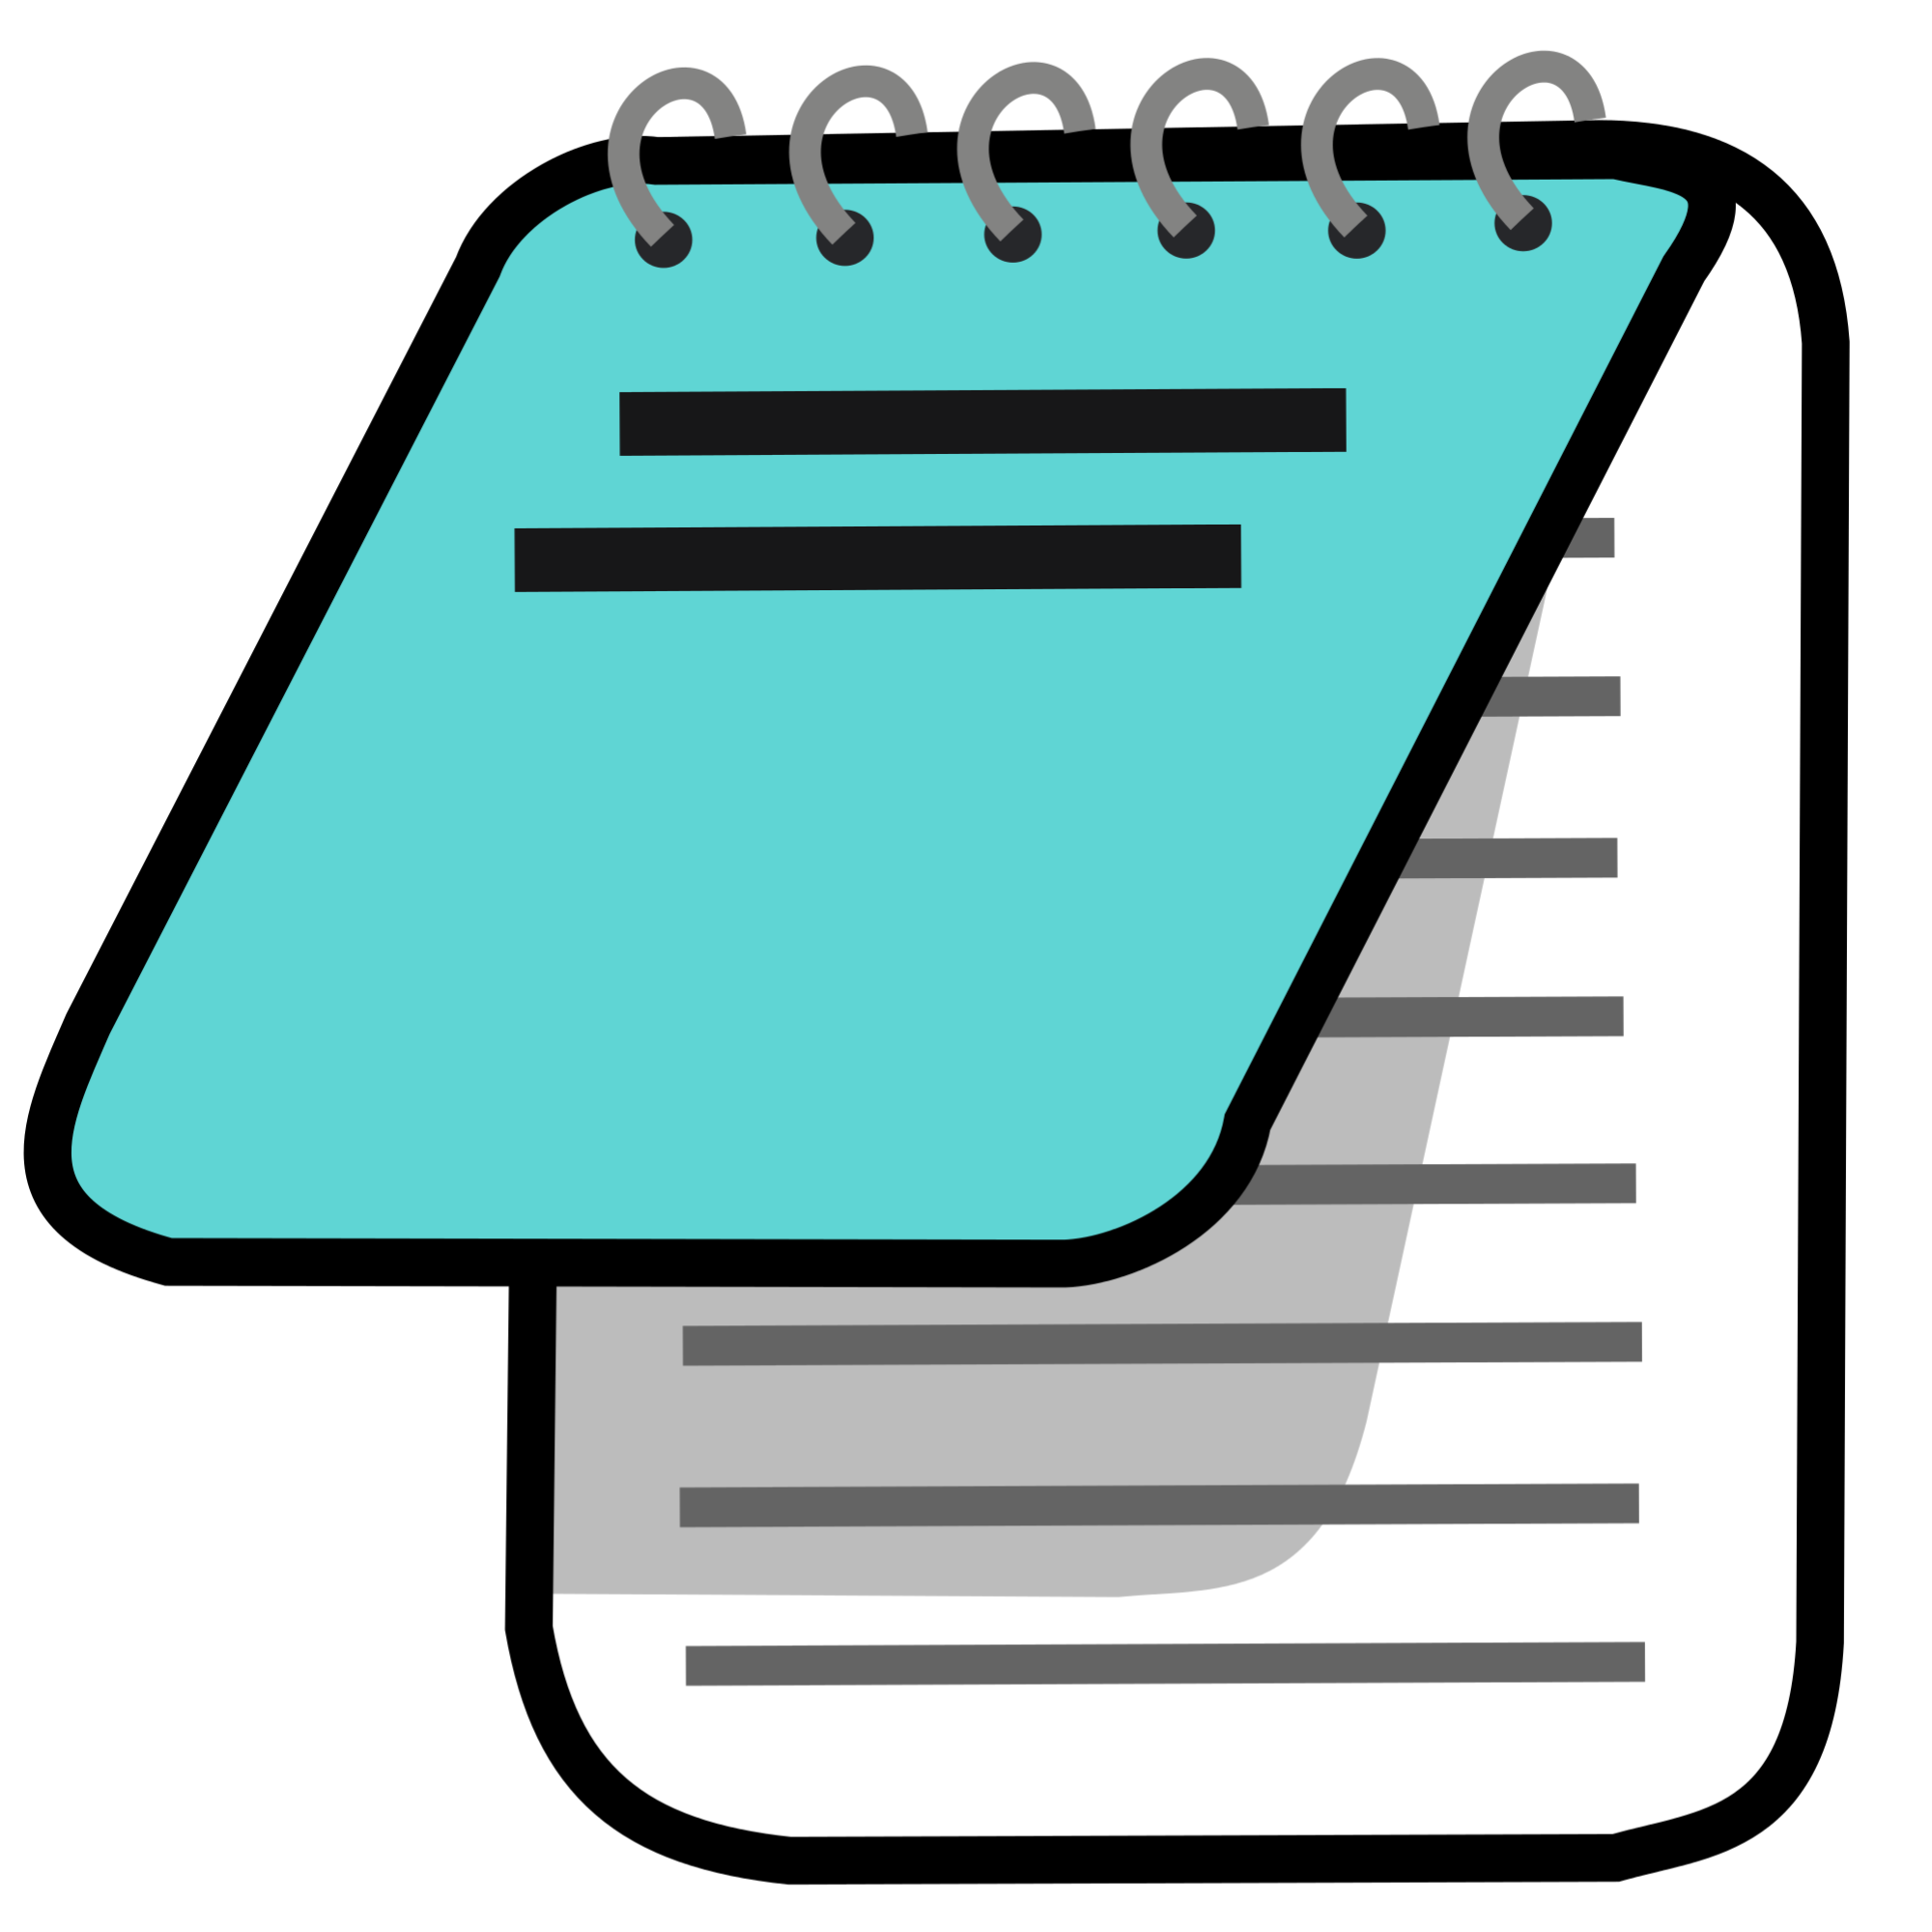 Windows notepad png. File icon svg wikimedia